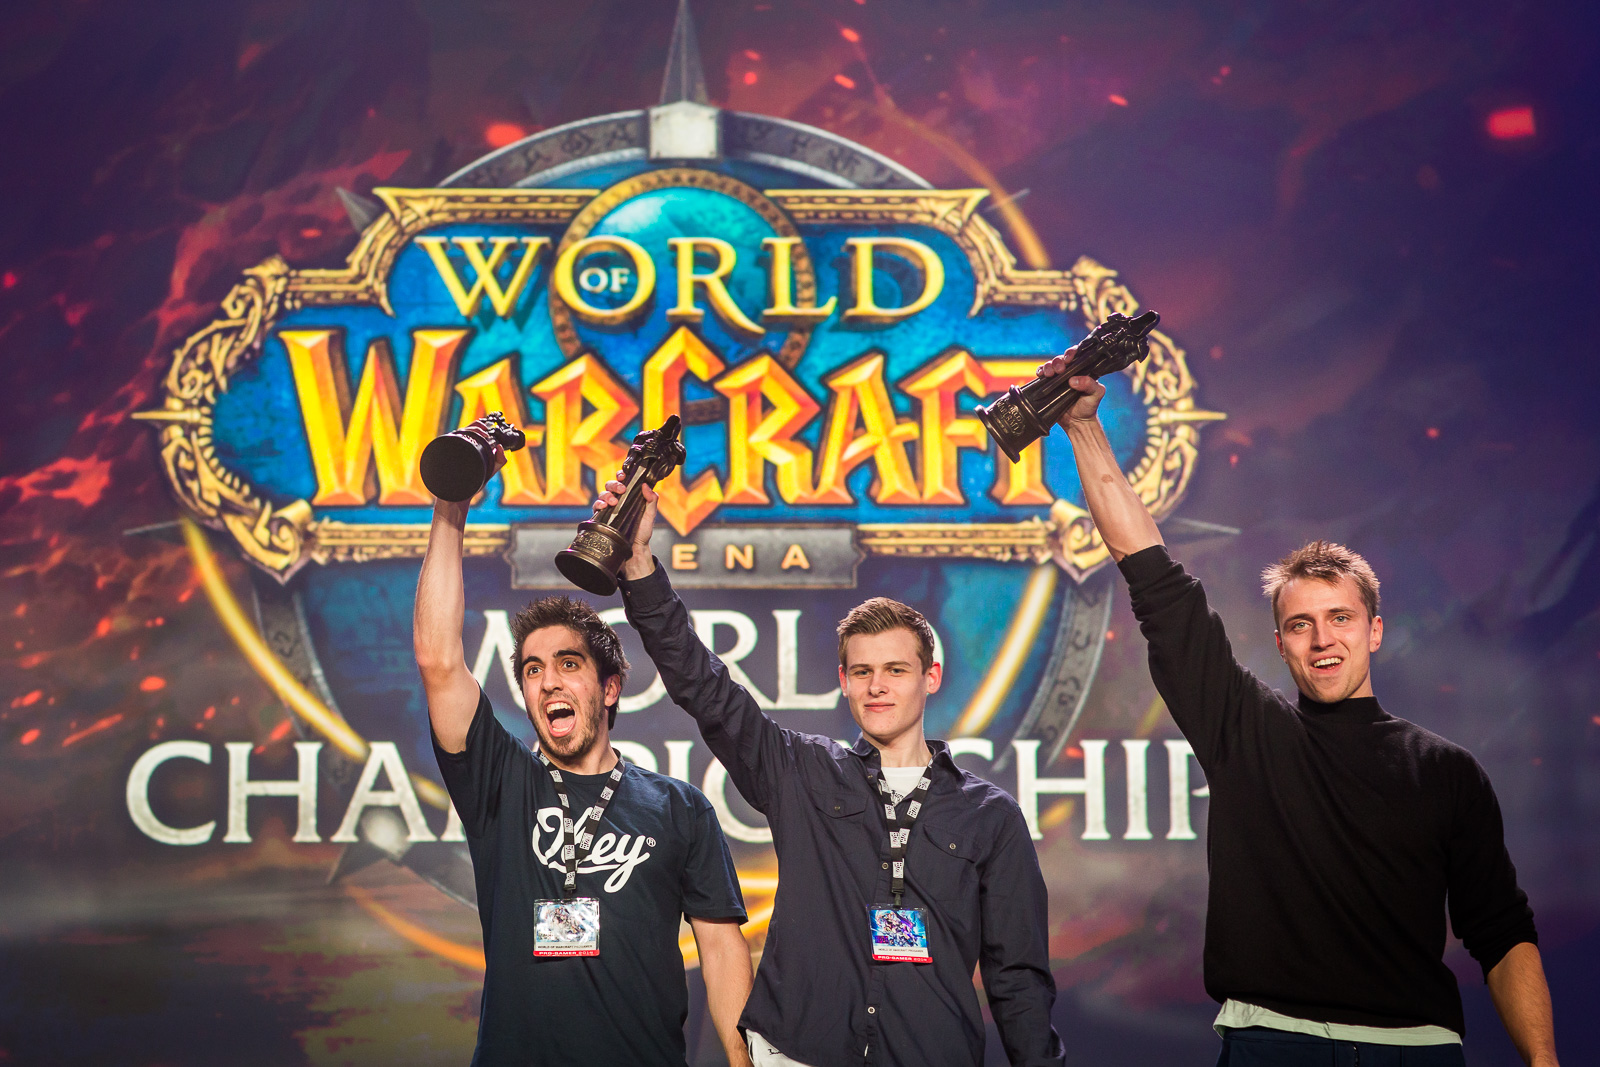 Team Bleached Bones victorious in the World of WarCraft Arena Championship 2014 (L-R): Anton